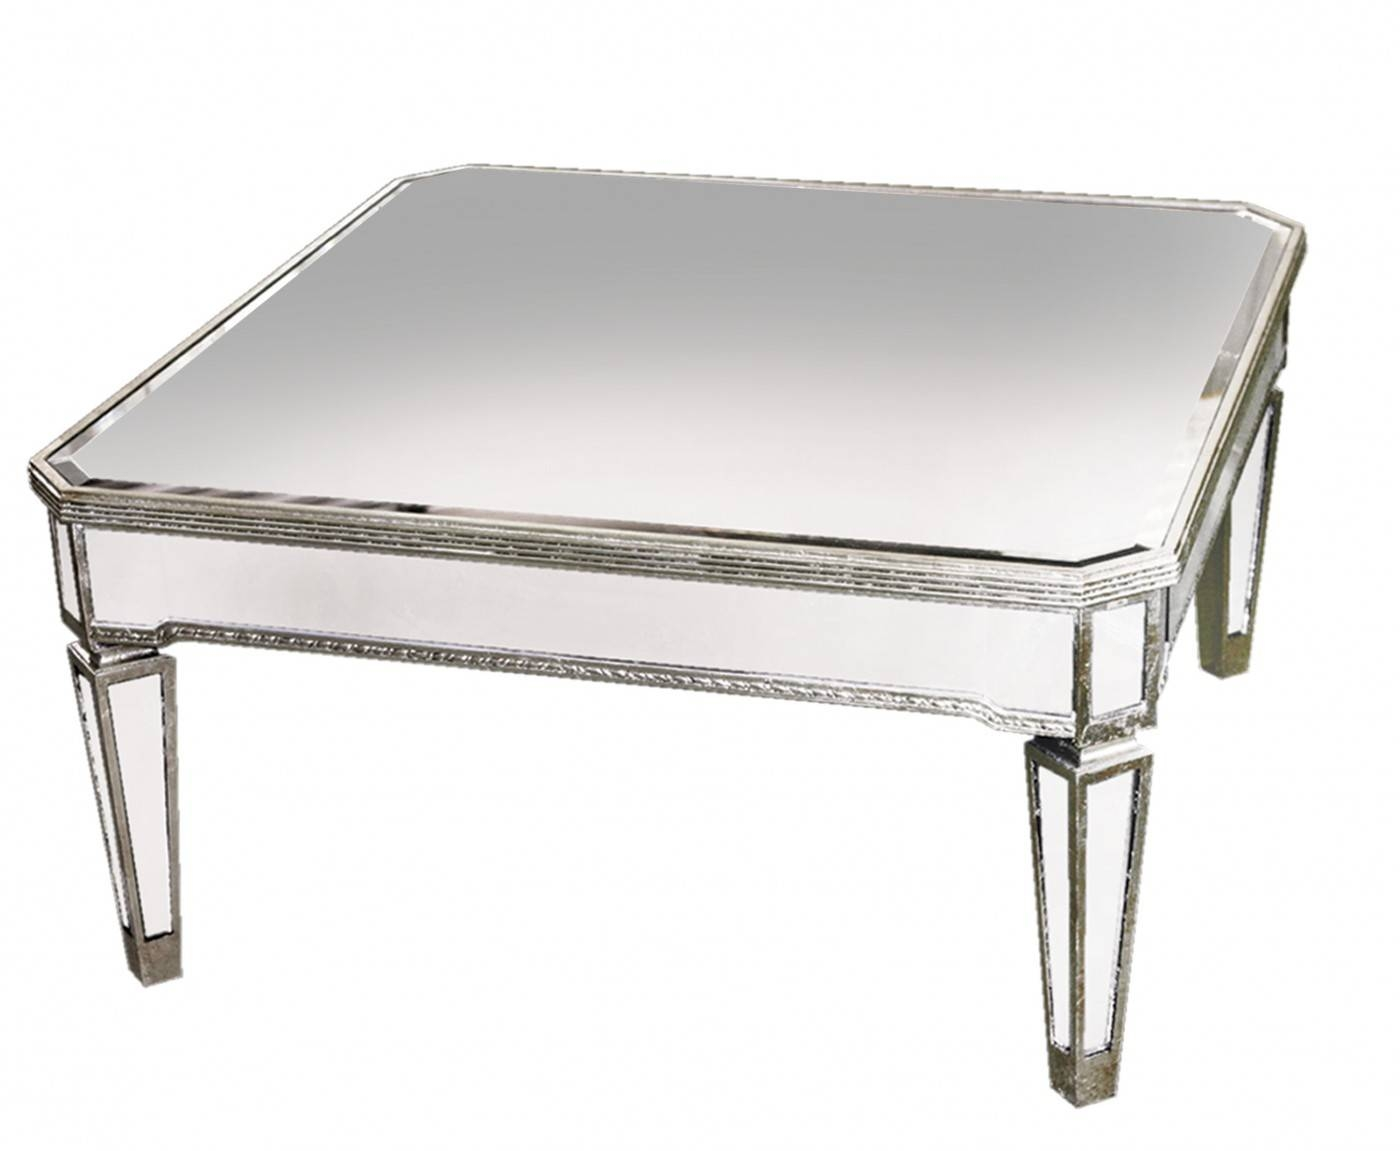 Mirrored Coffee Tables | Idi Design throughout Mirrored Coffee Tables (Image 21 of 30)